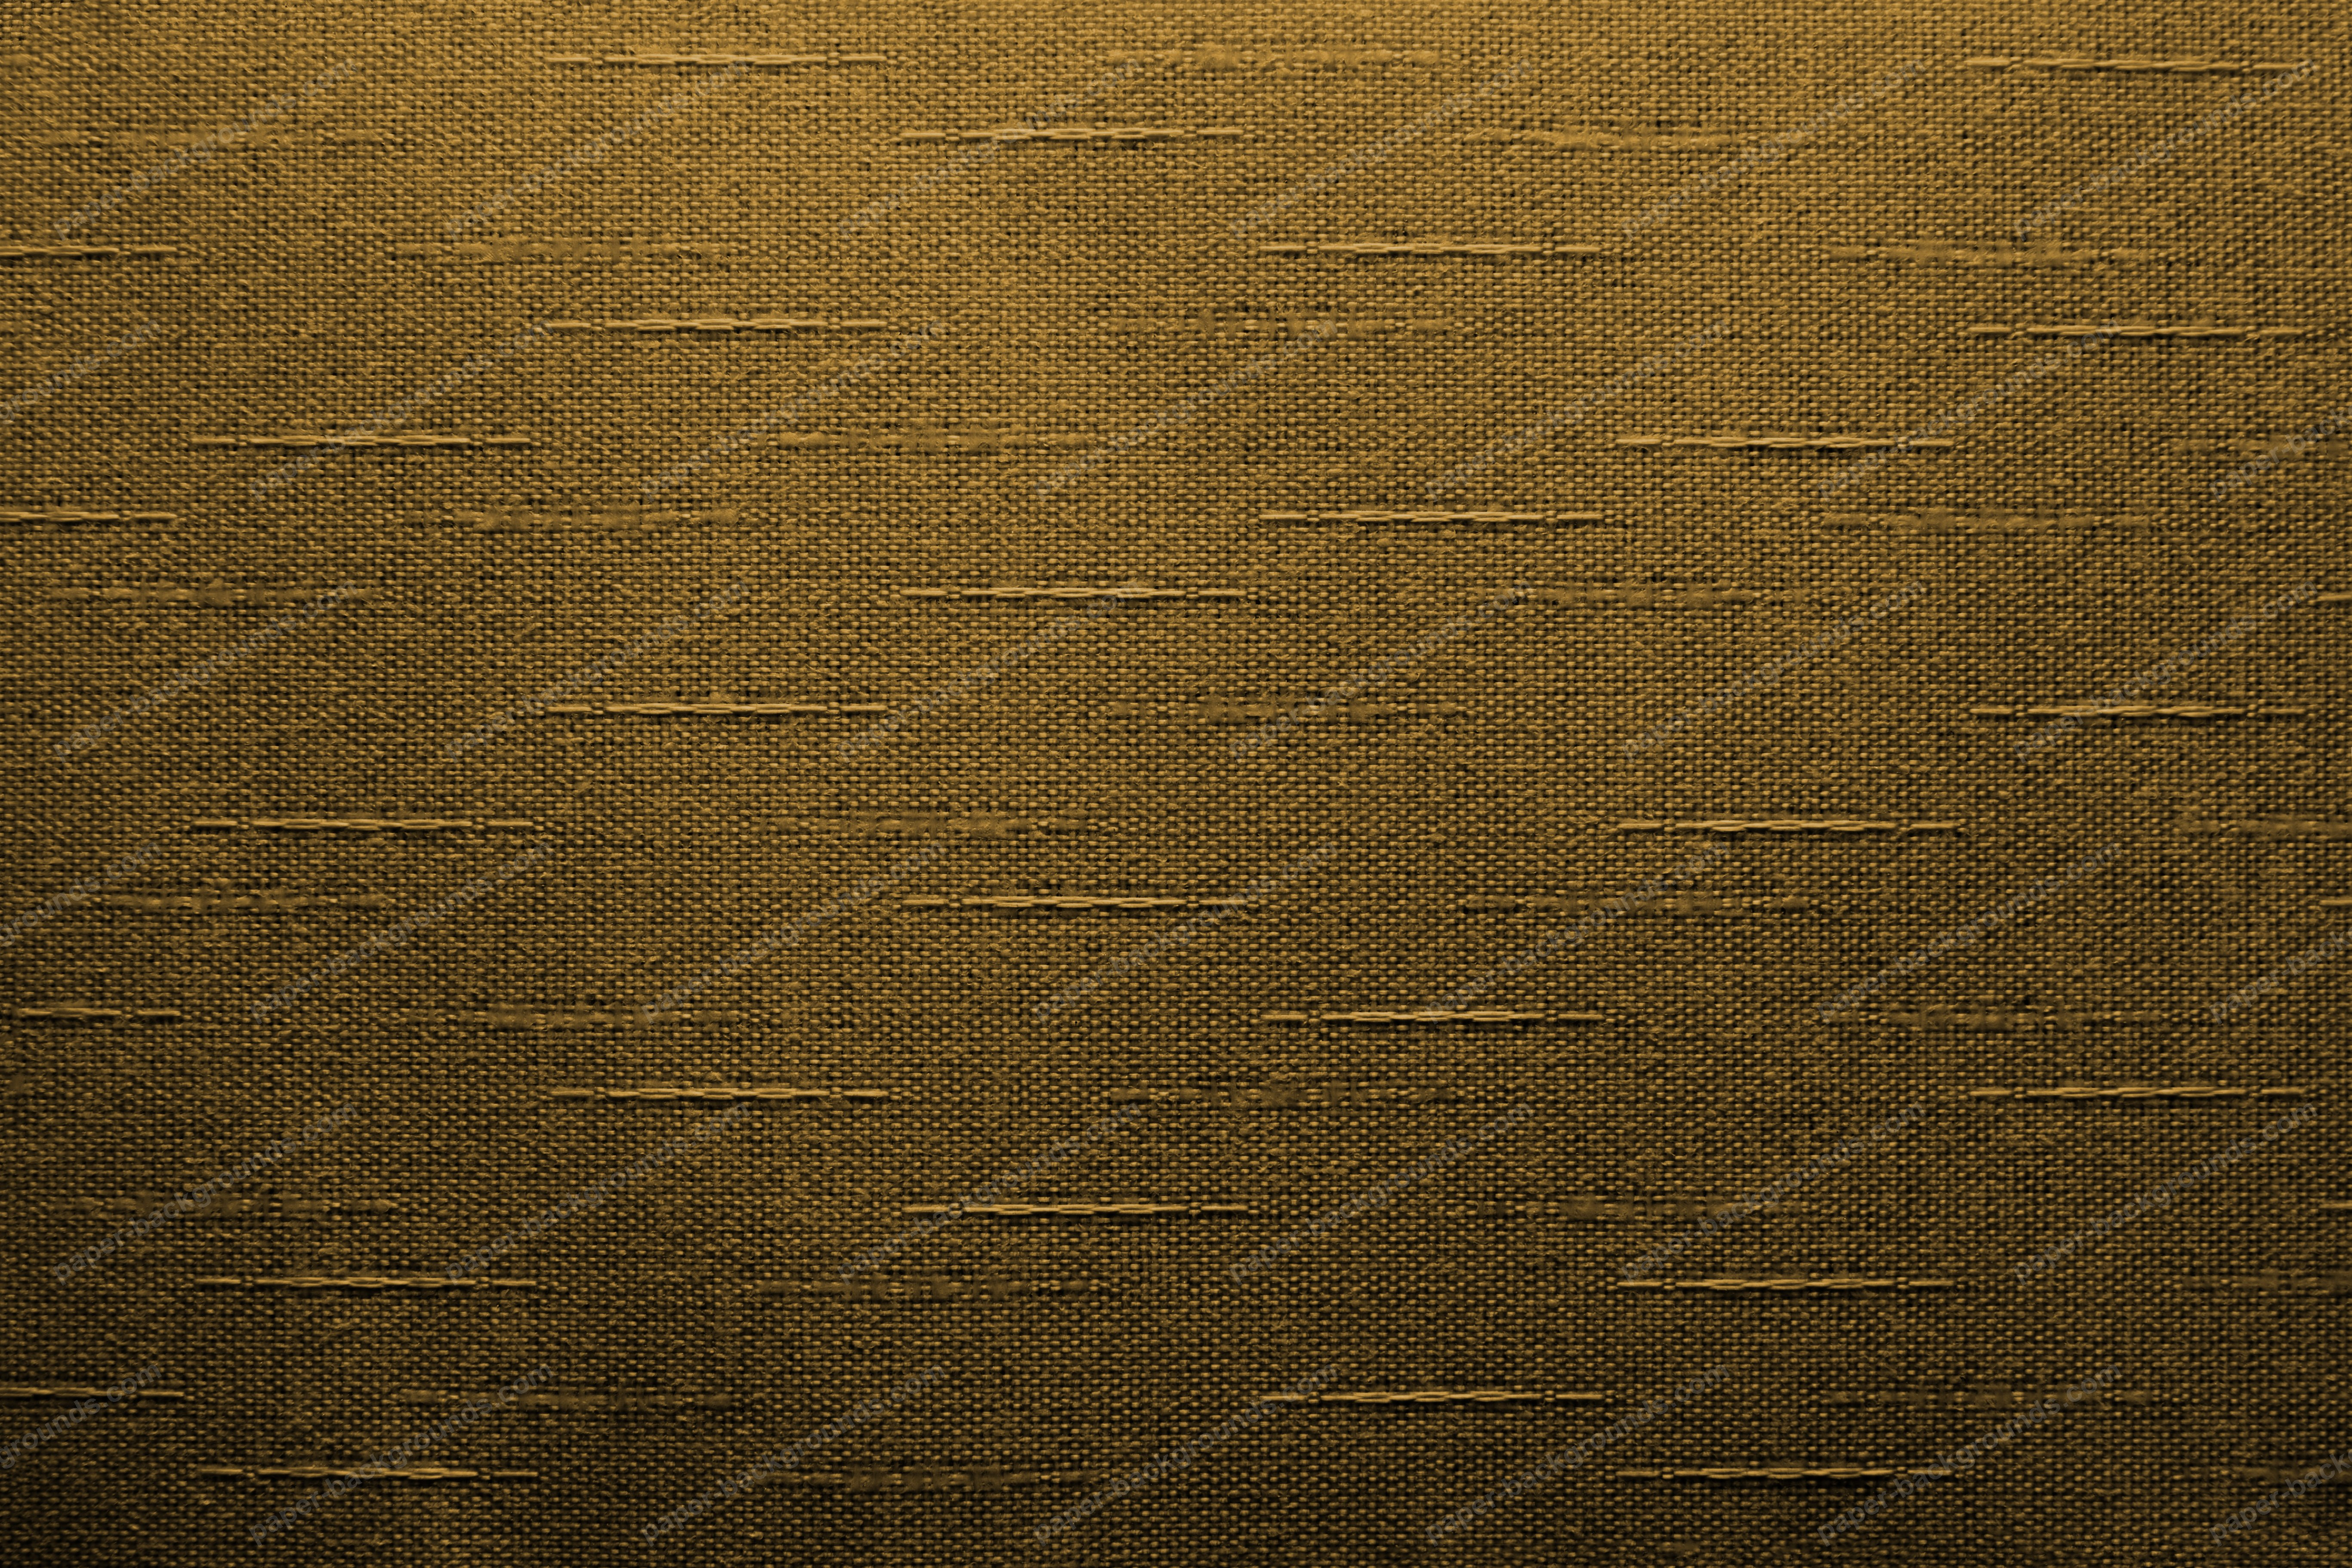 Paper Backgrounds | Brown Canvas Texture Background